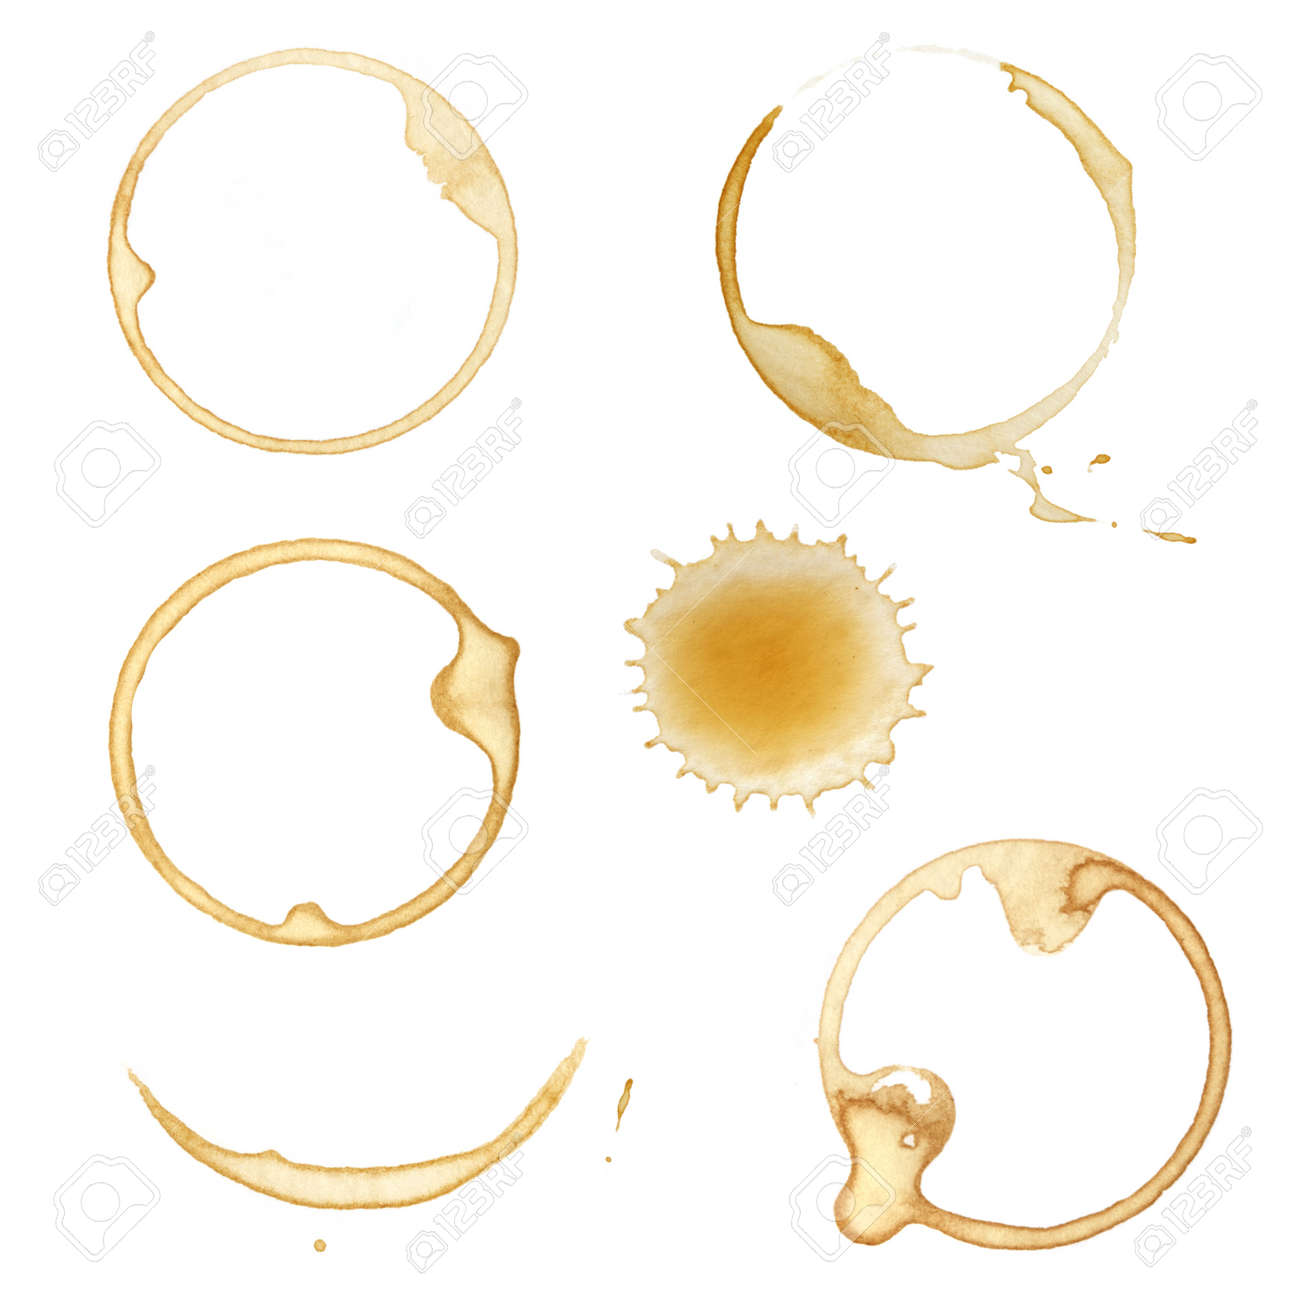 Coffee cup stains and splashes, isolated on white. Stock Photo - 5463036